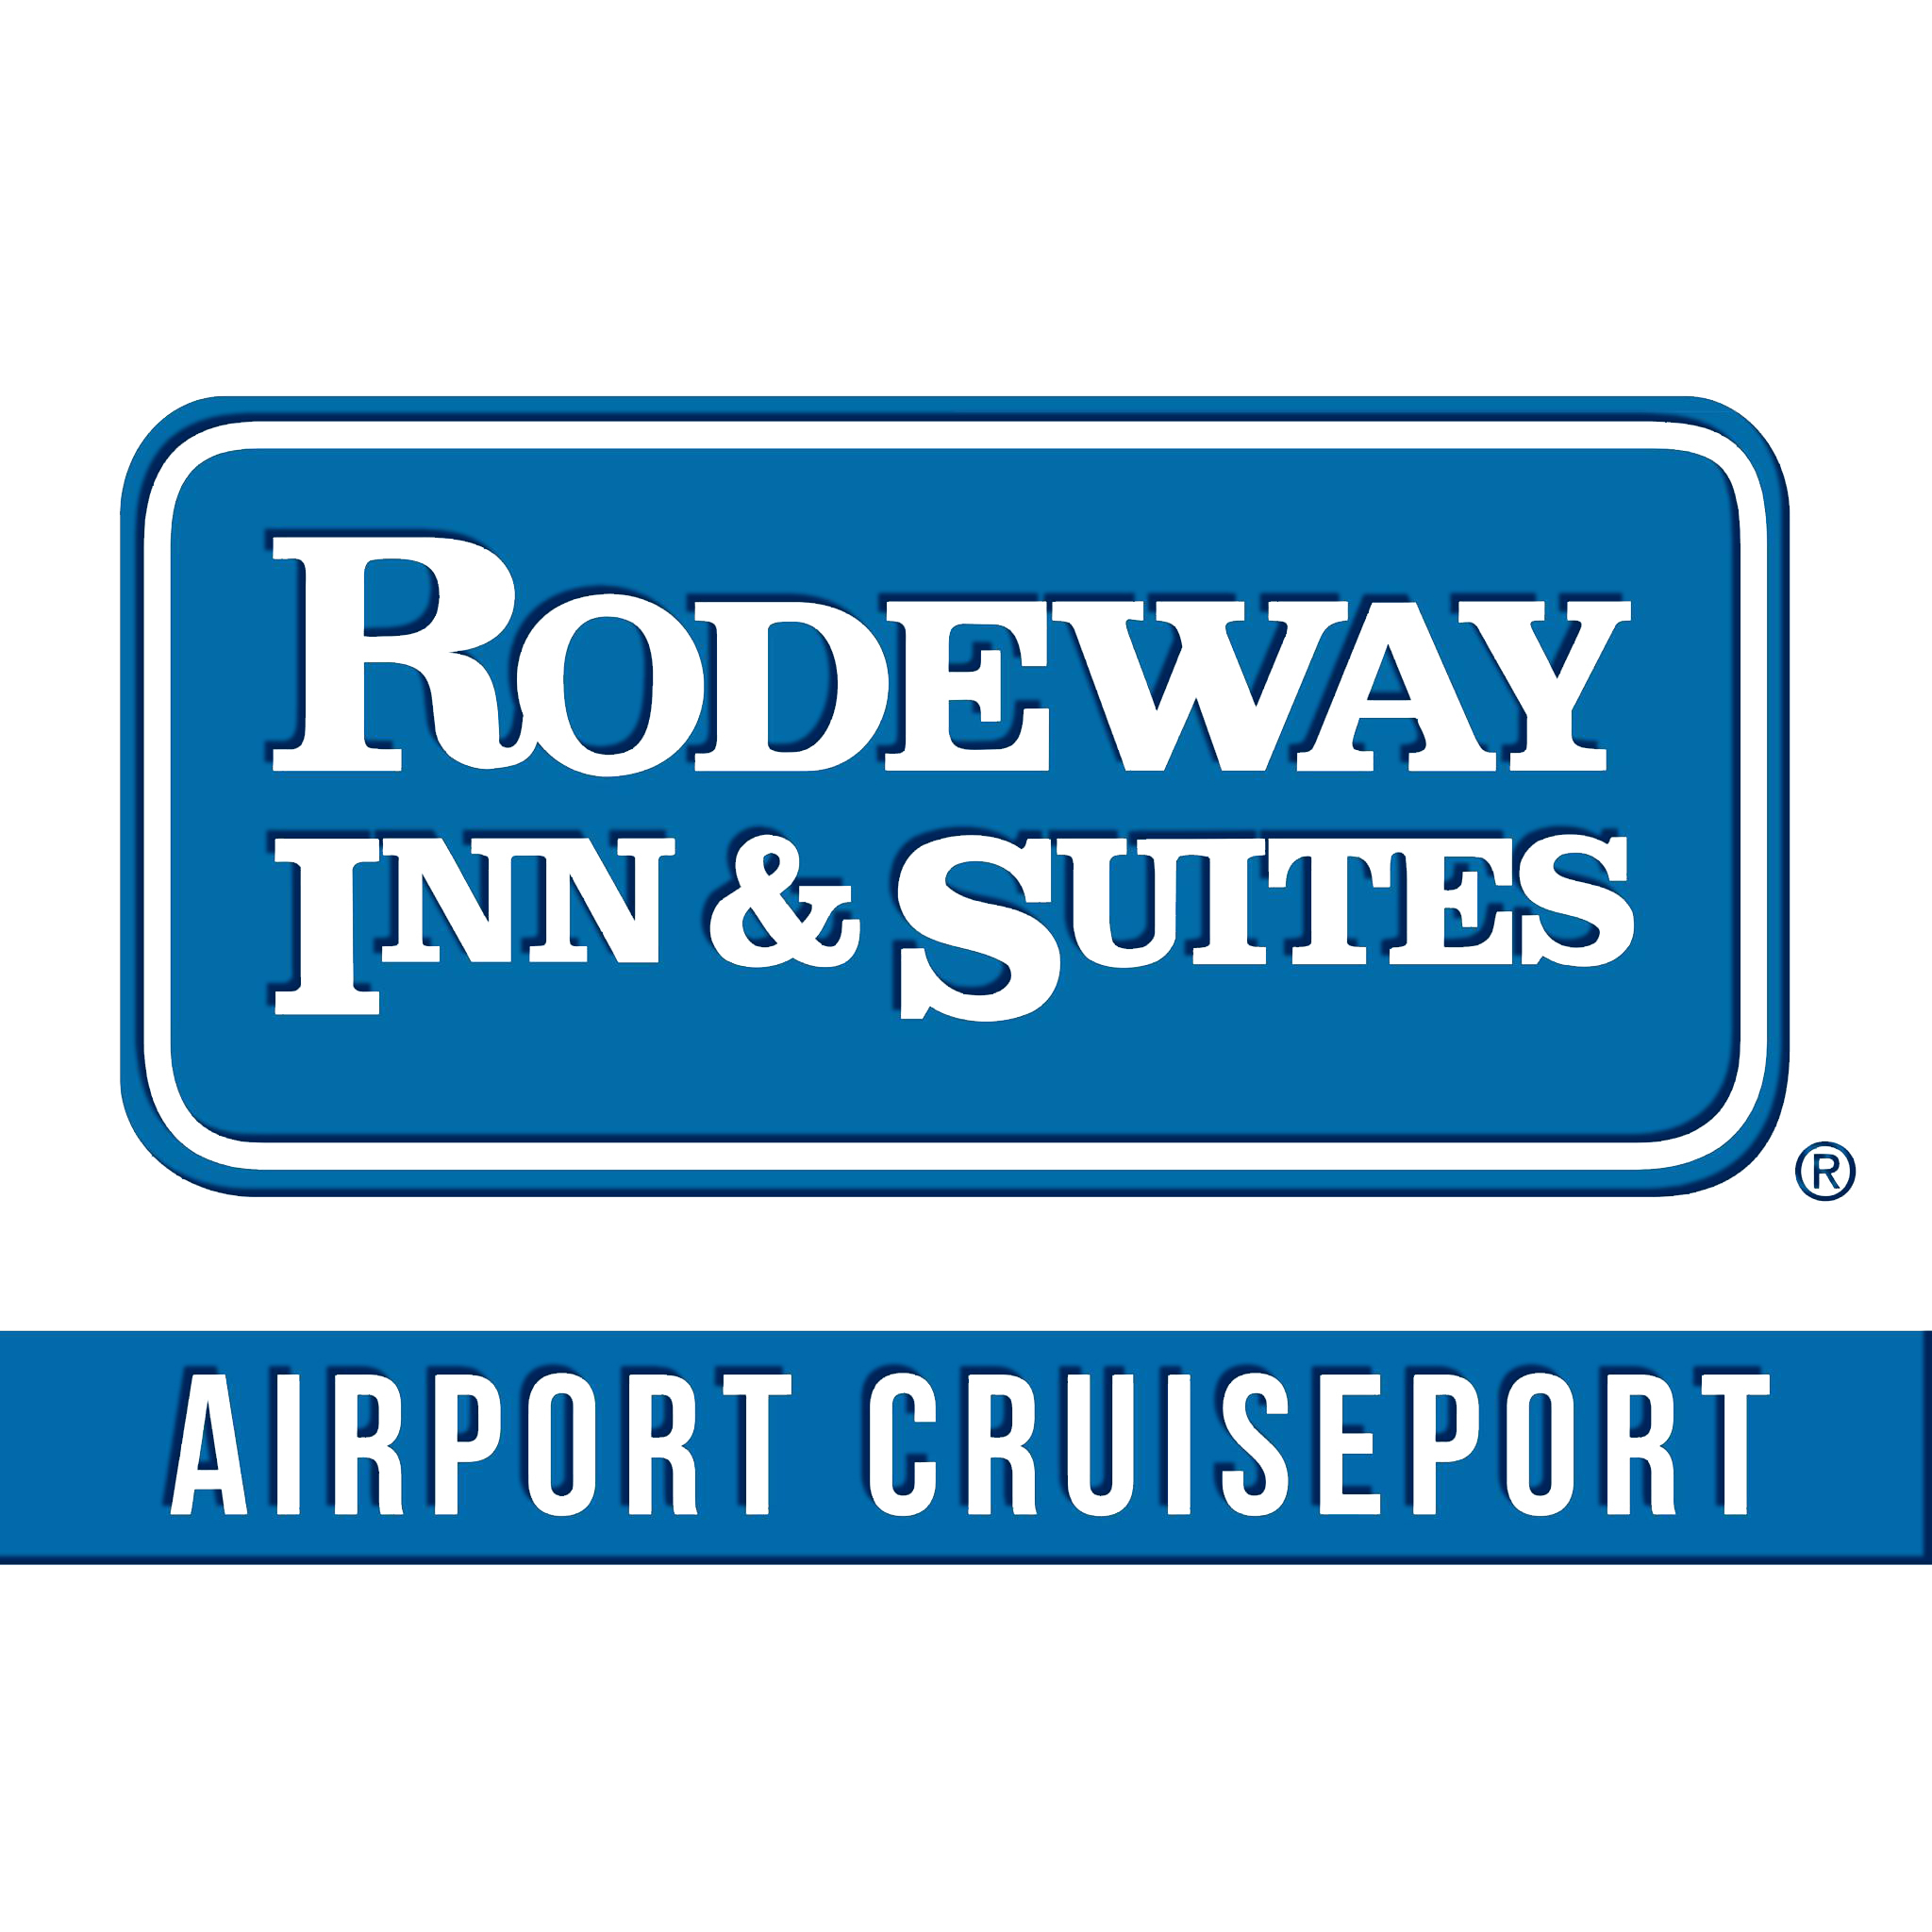 Rodeway Inn & Suites Fort Lauderdale Airport & Port Everglades Cruise Port Hotel